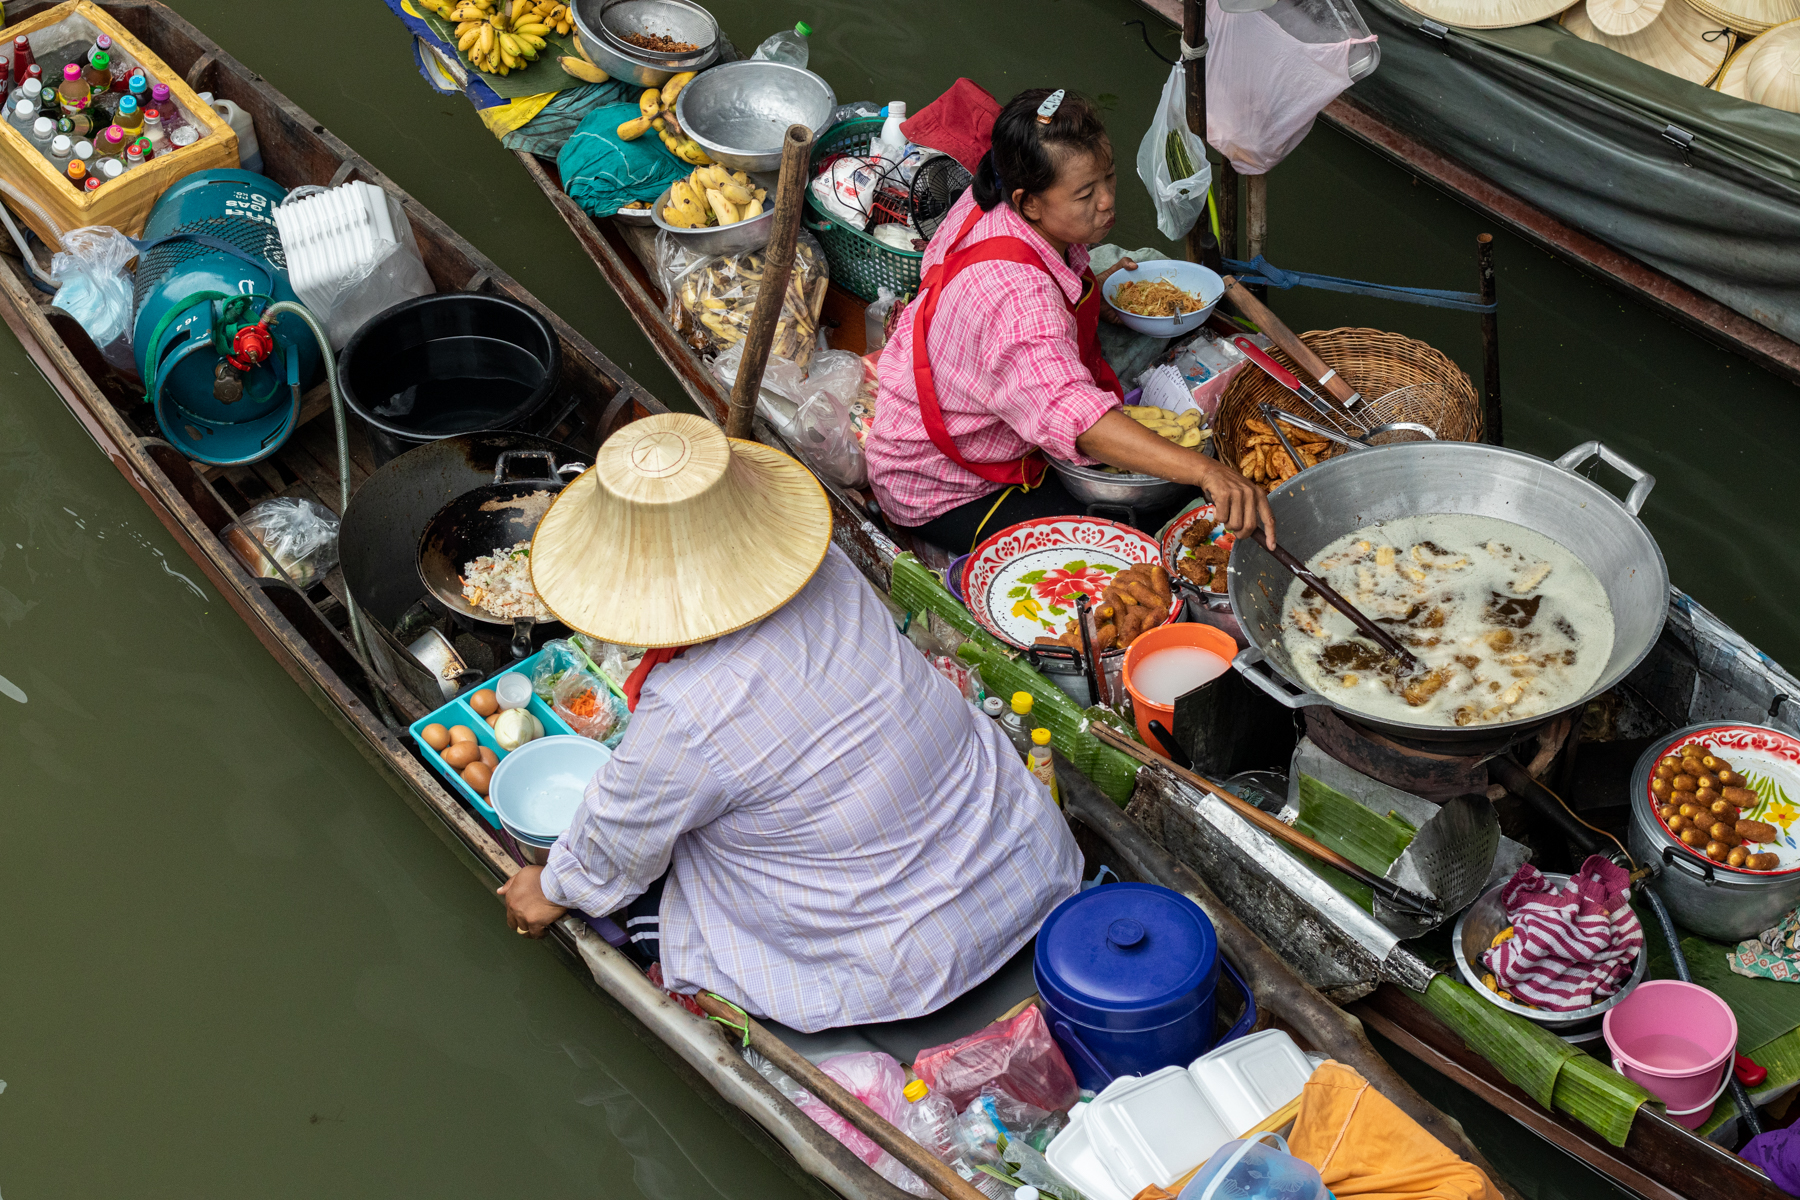 In February 2020 there was still a lot of hustle and bustle on the Floating Market southwest of Bangkok. It's hard to imagine this place empty.